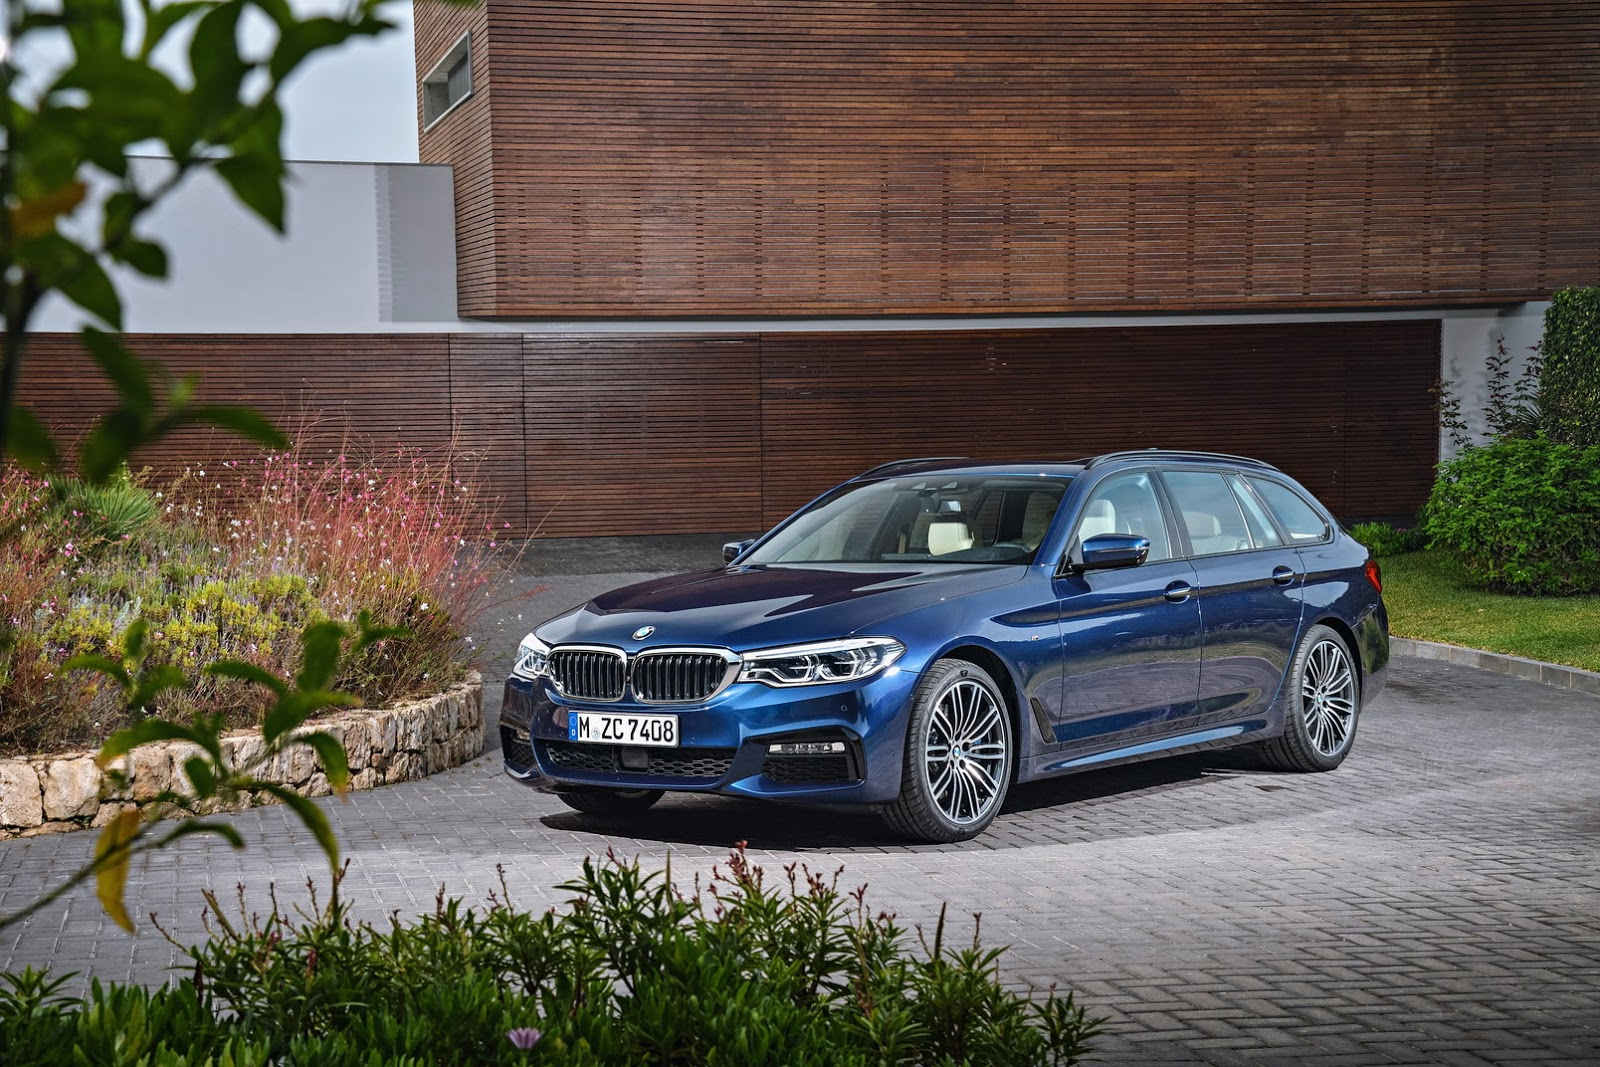 2017 bmw 5 series touring g31 revealed ahead of geneva. Black Bedroom Furniture Sets. Home Design Ideas